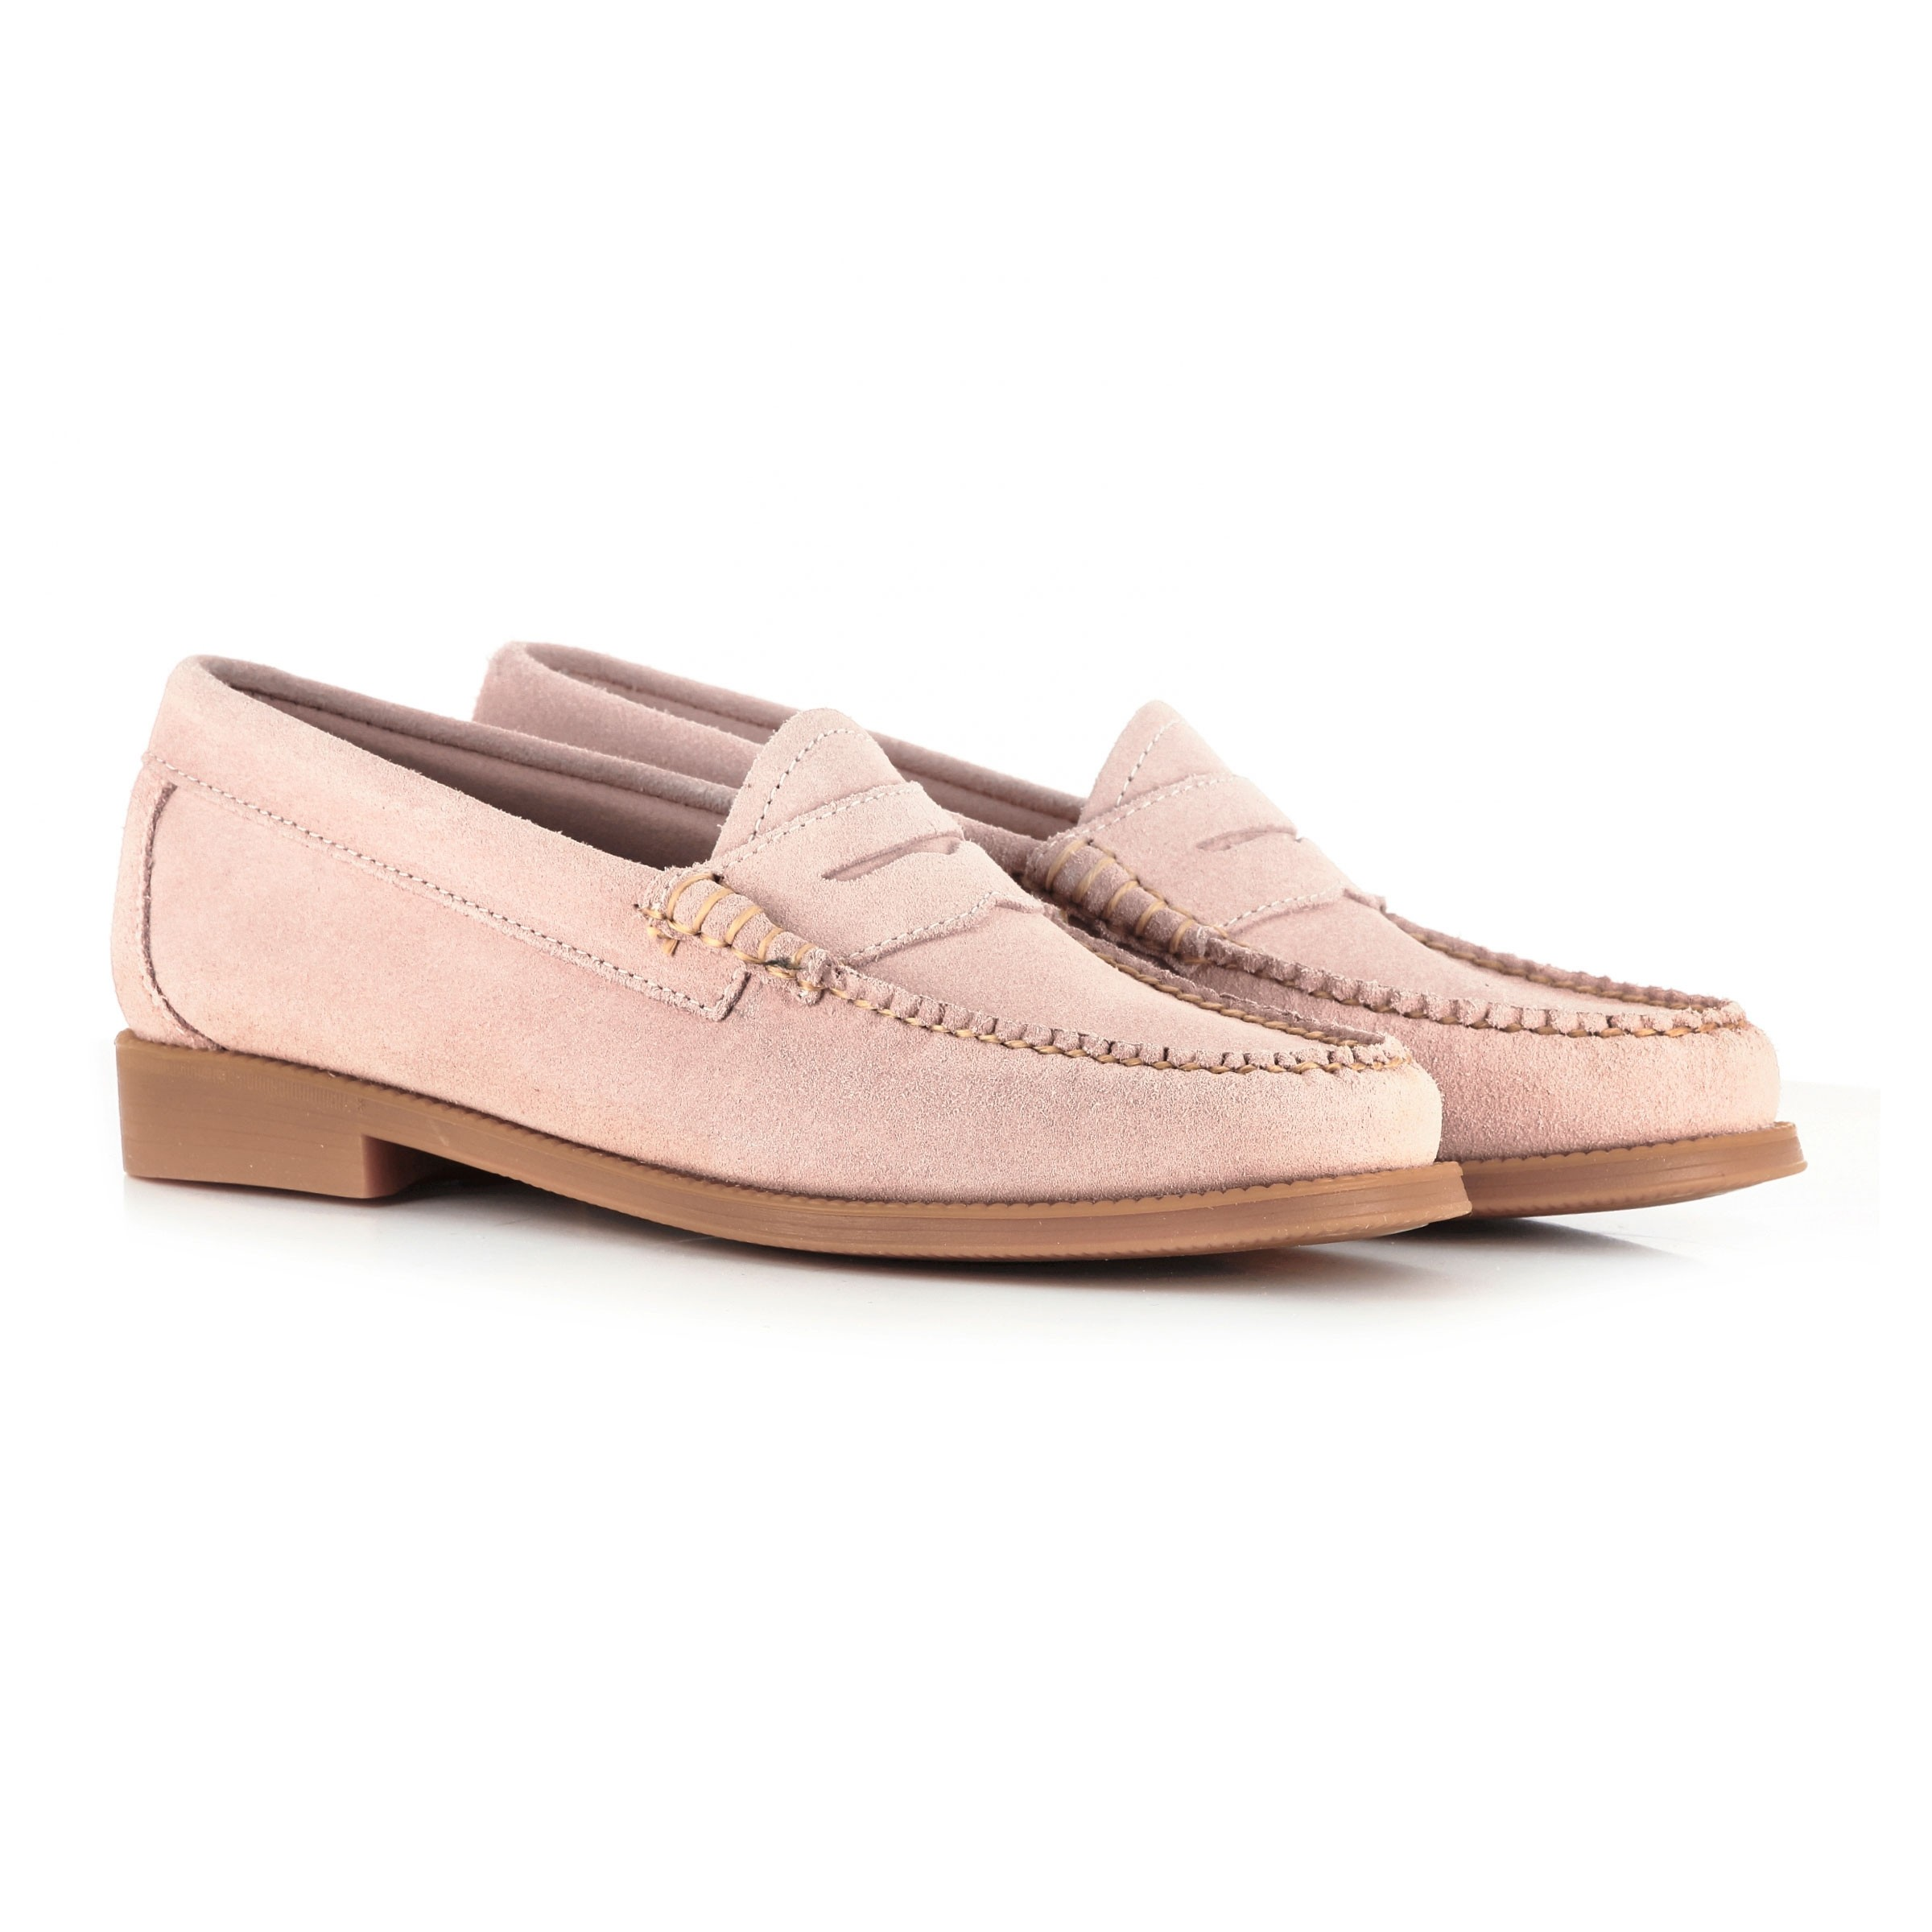 Gh Bass Weejun Wmn Penny Loafers Pink